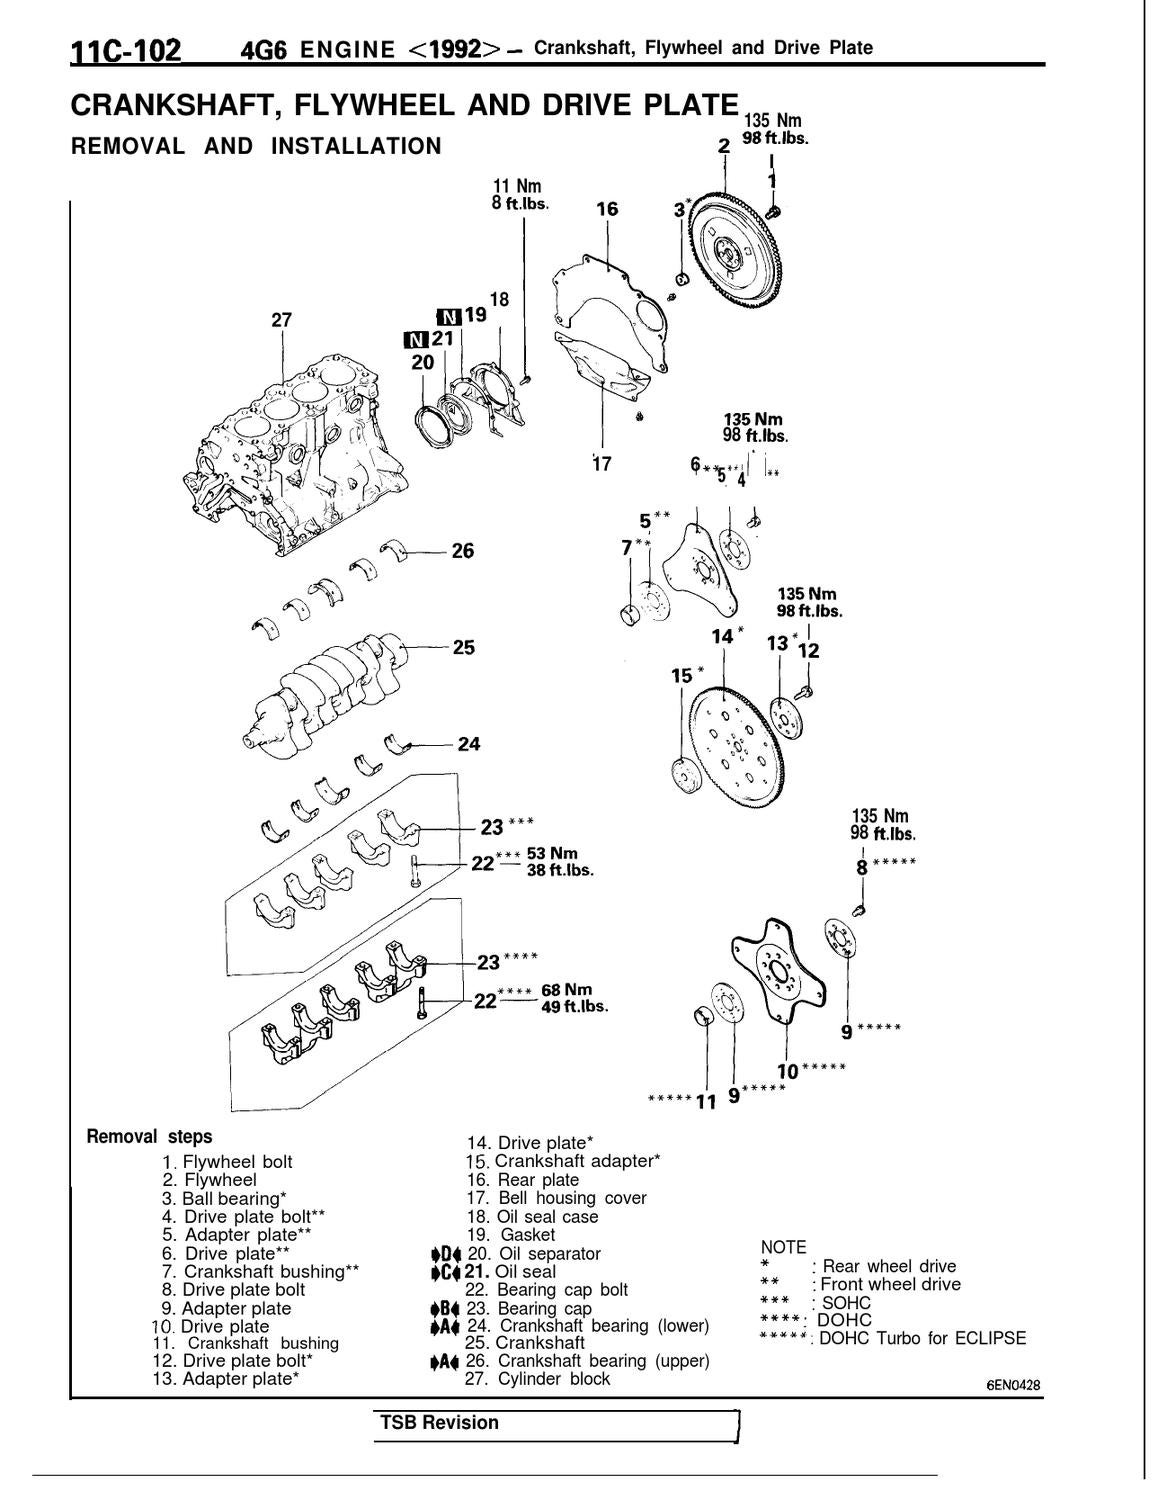 4G61, 4G63, 4G64 Engine 1990- 1994, MANUAL by ias mat - issuu